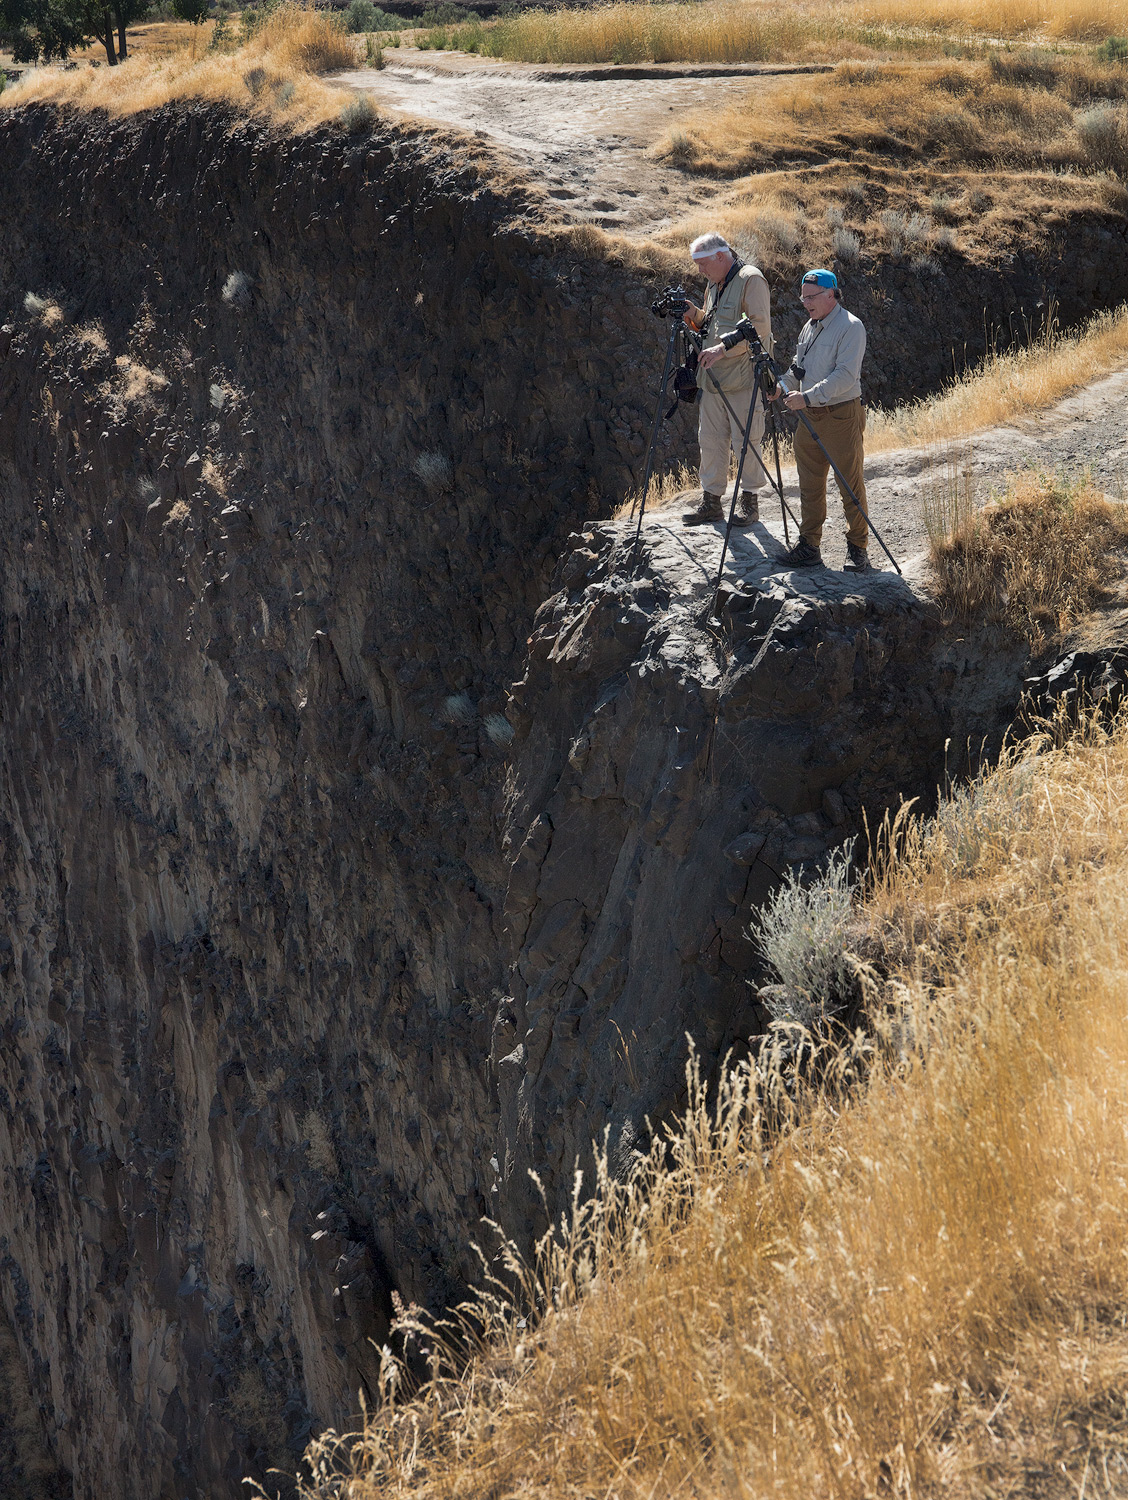 Photographers lining up a shot of Palouse Falls from the edge of the ravine.